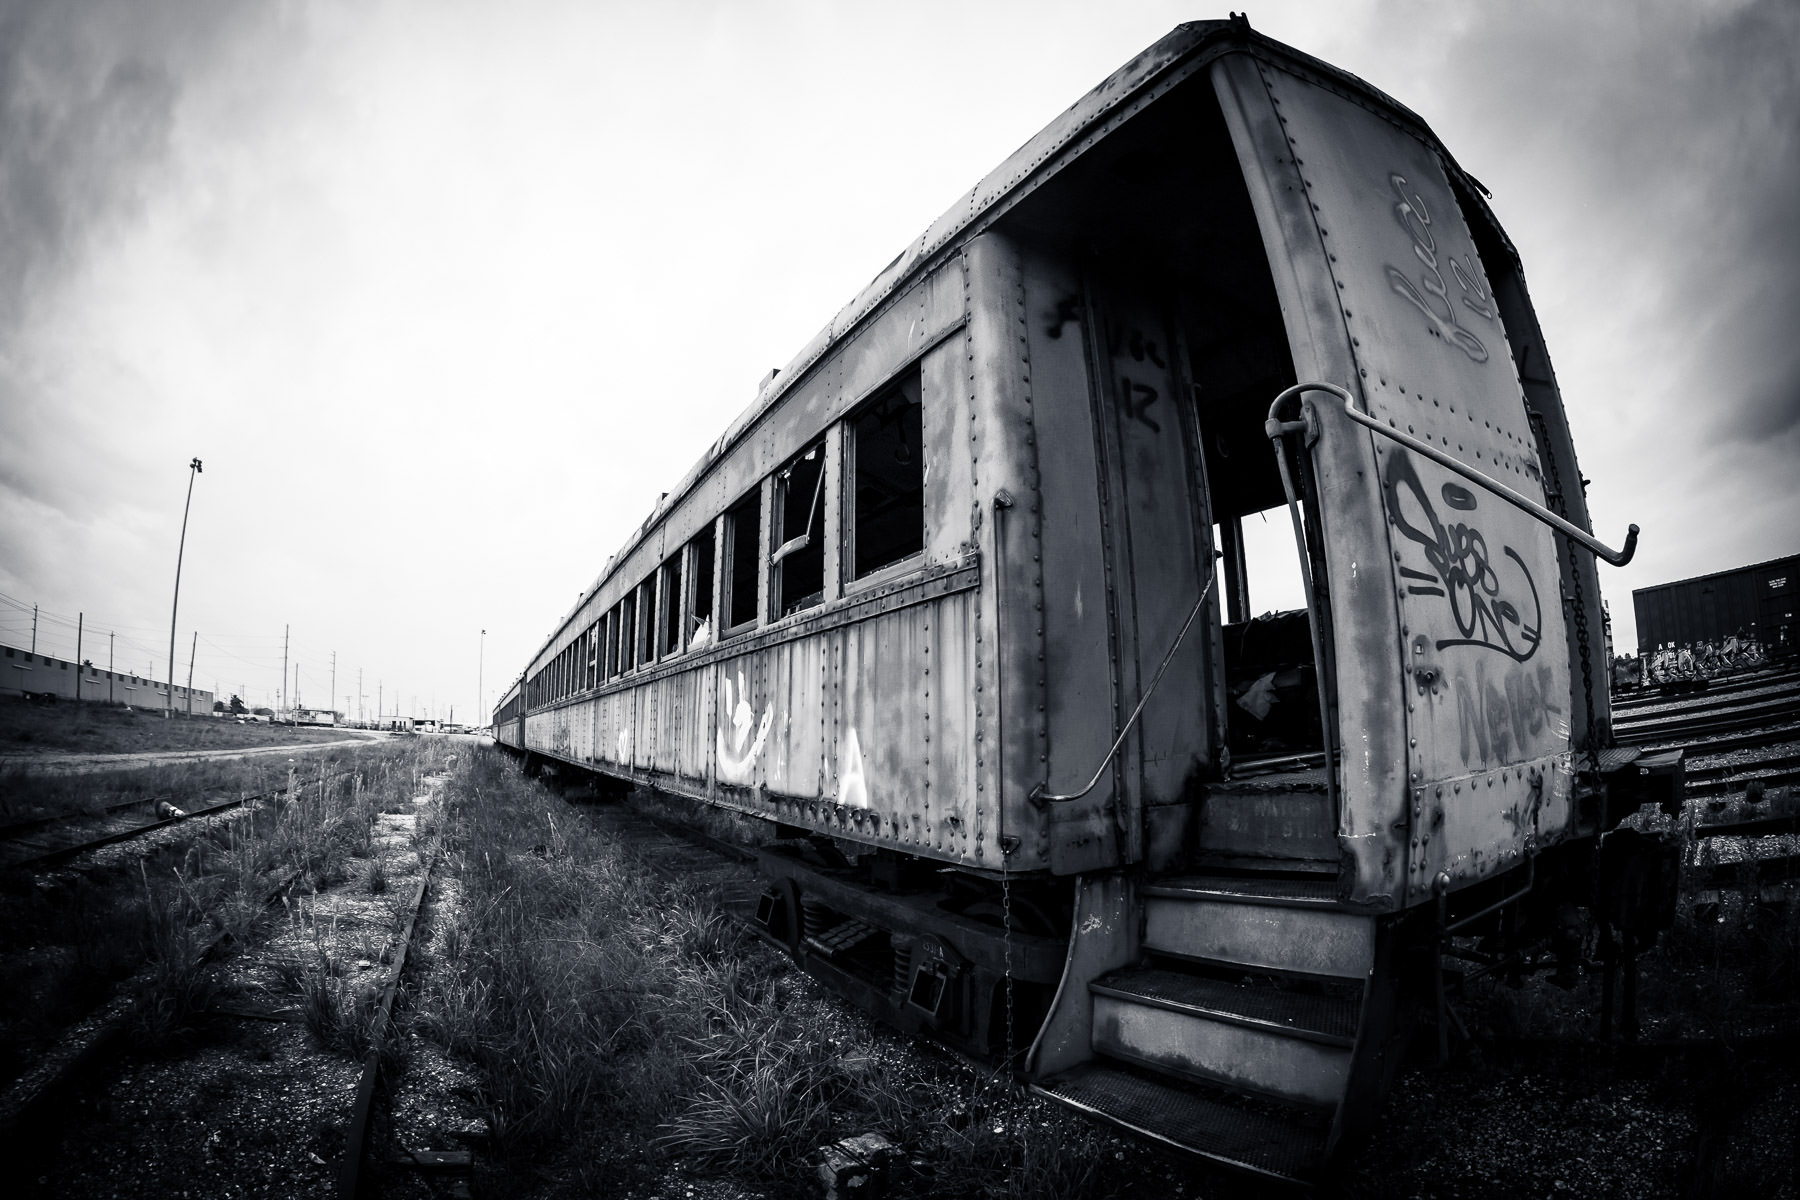 An abandoned railcar rusting in the Union Pacific rail yard at Galveston, Texas.